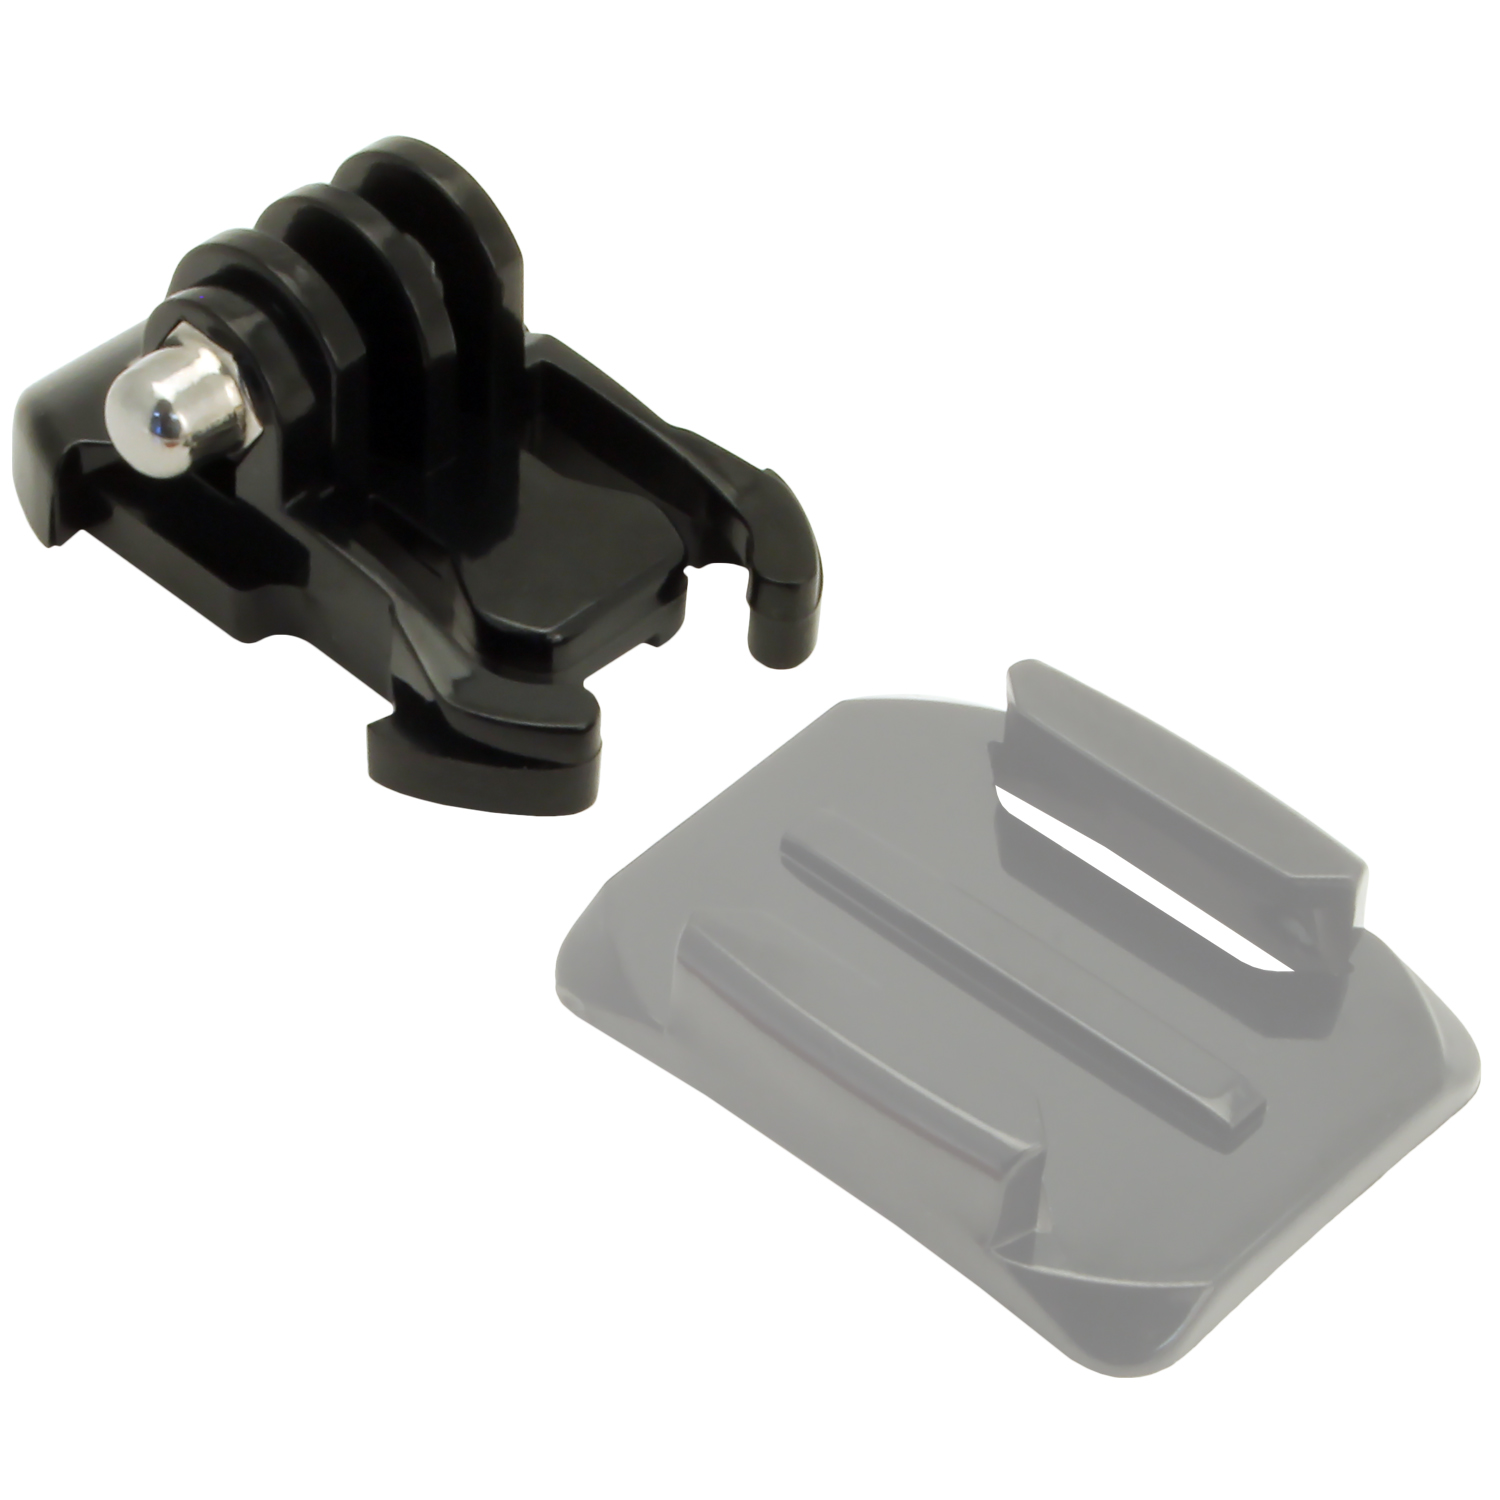 Optix pro quick release buckle mount clips for gopro